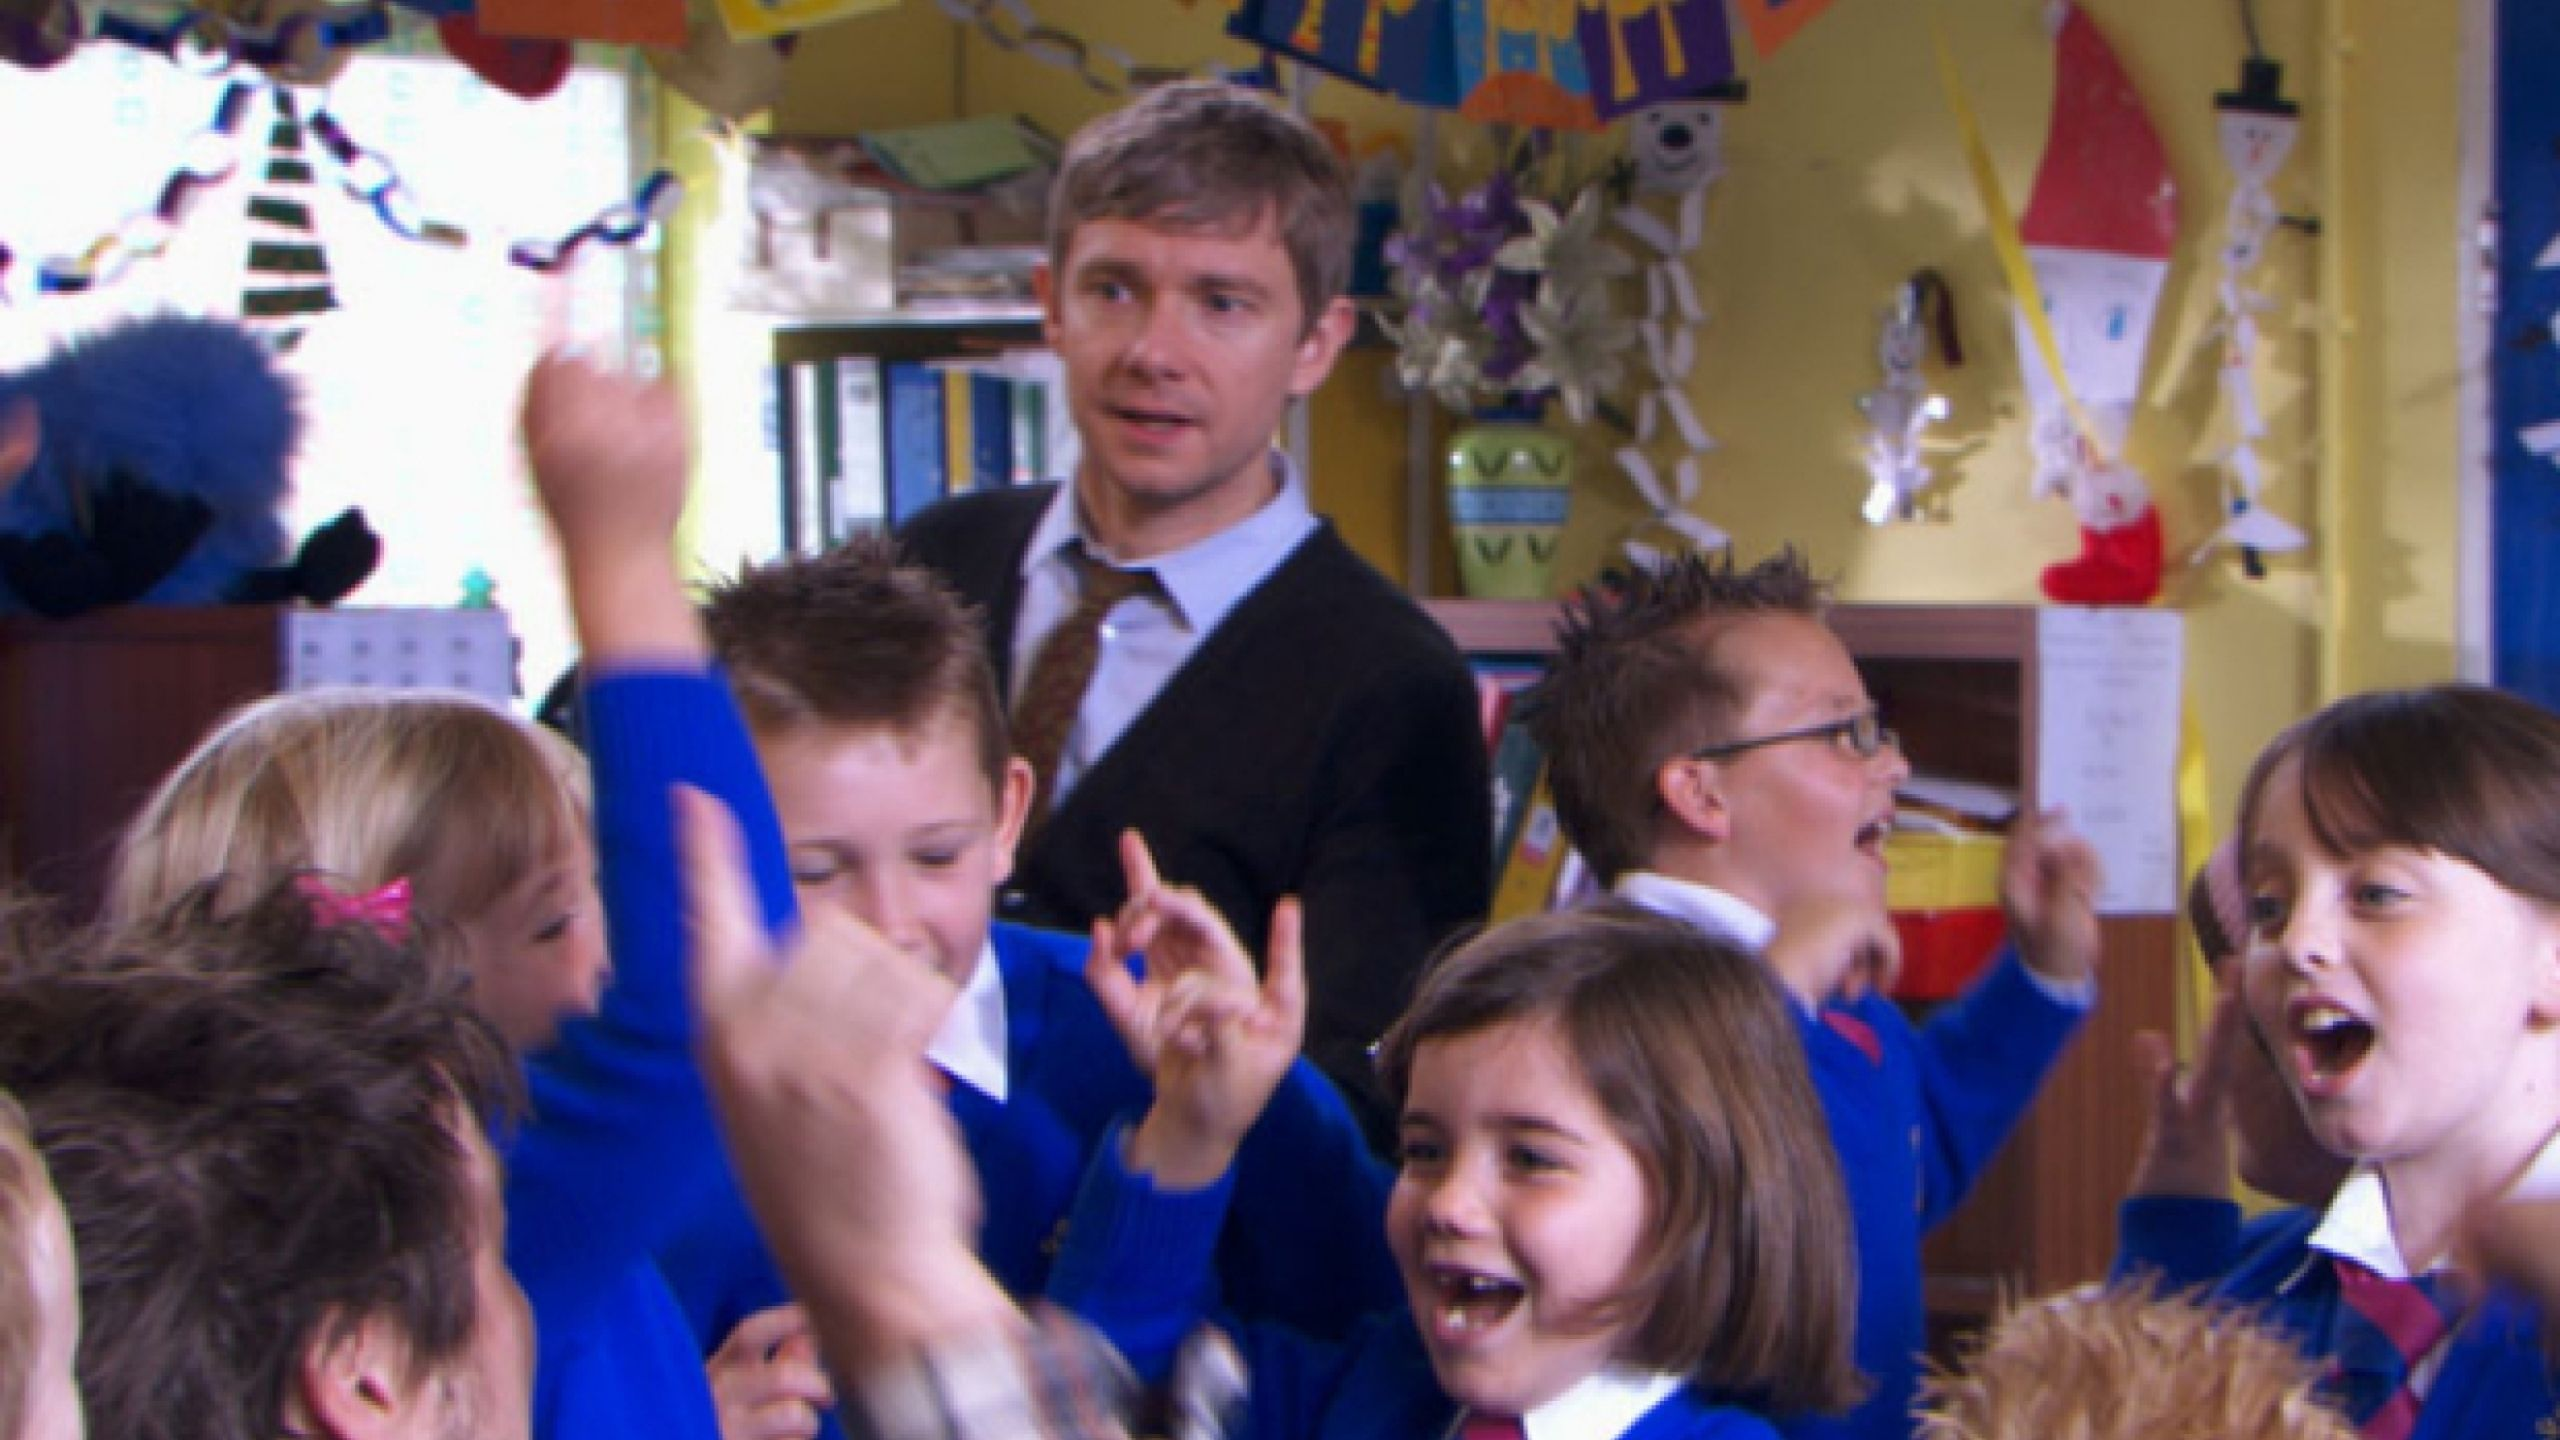 Martin Freeman in a busy school corridor